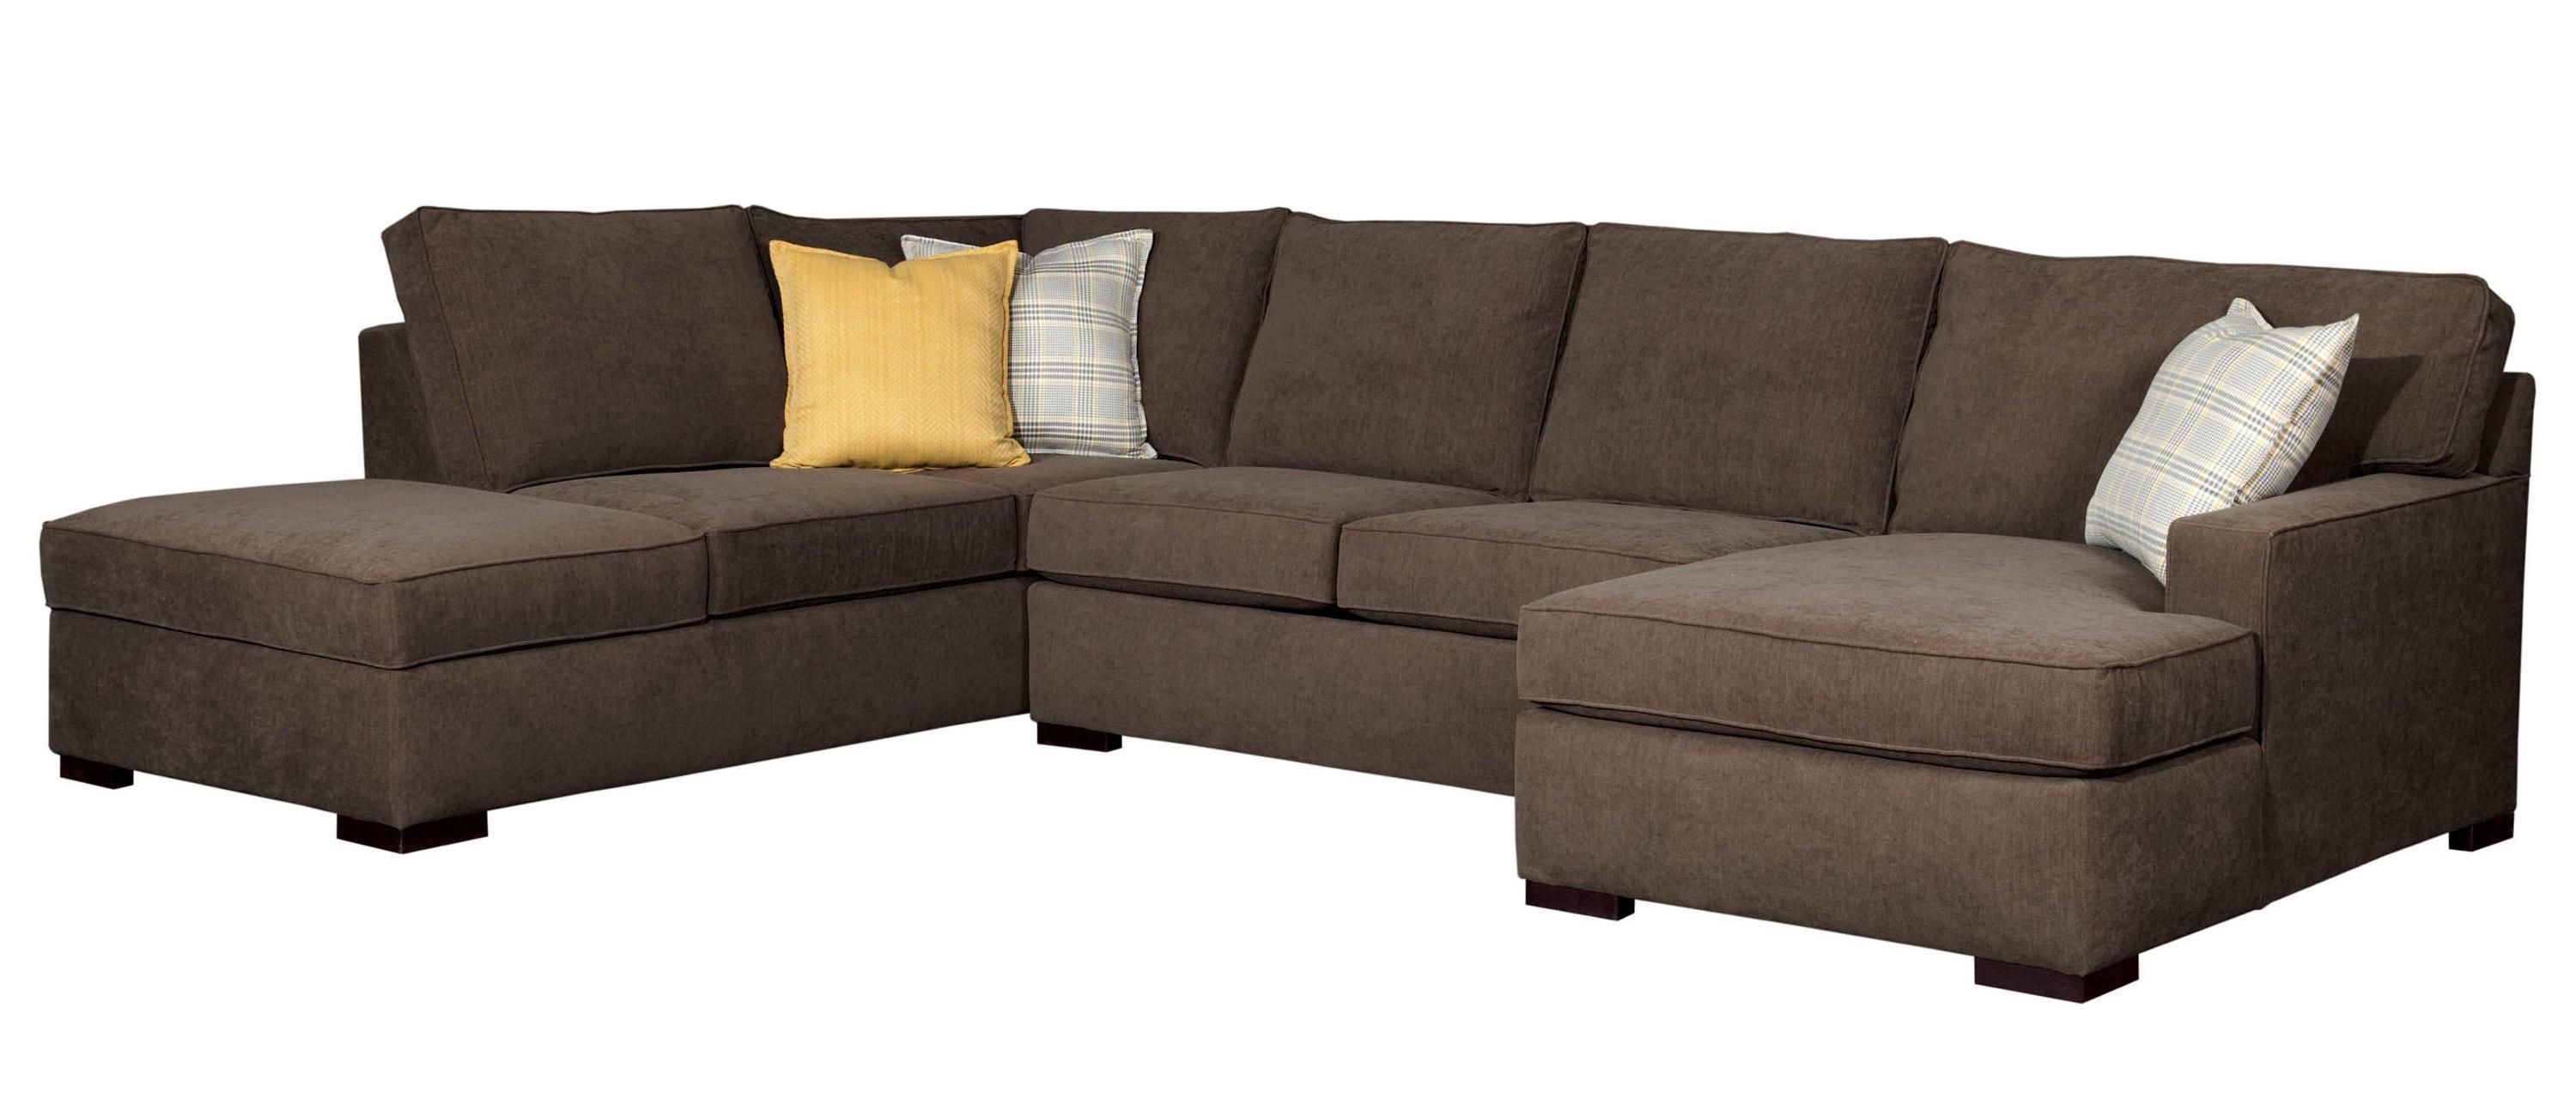 Broyhill Furniture Raphael Contemporary Sectional Sofa With Raf Inside Broyhill Sectional Sofas (Image 5 of 15)